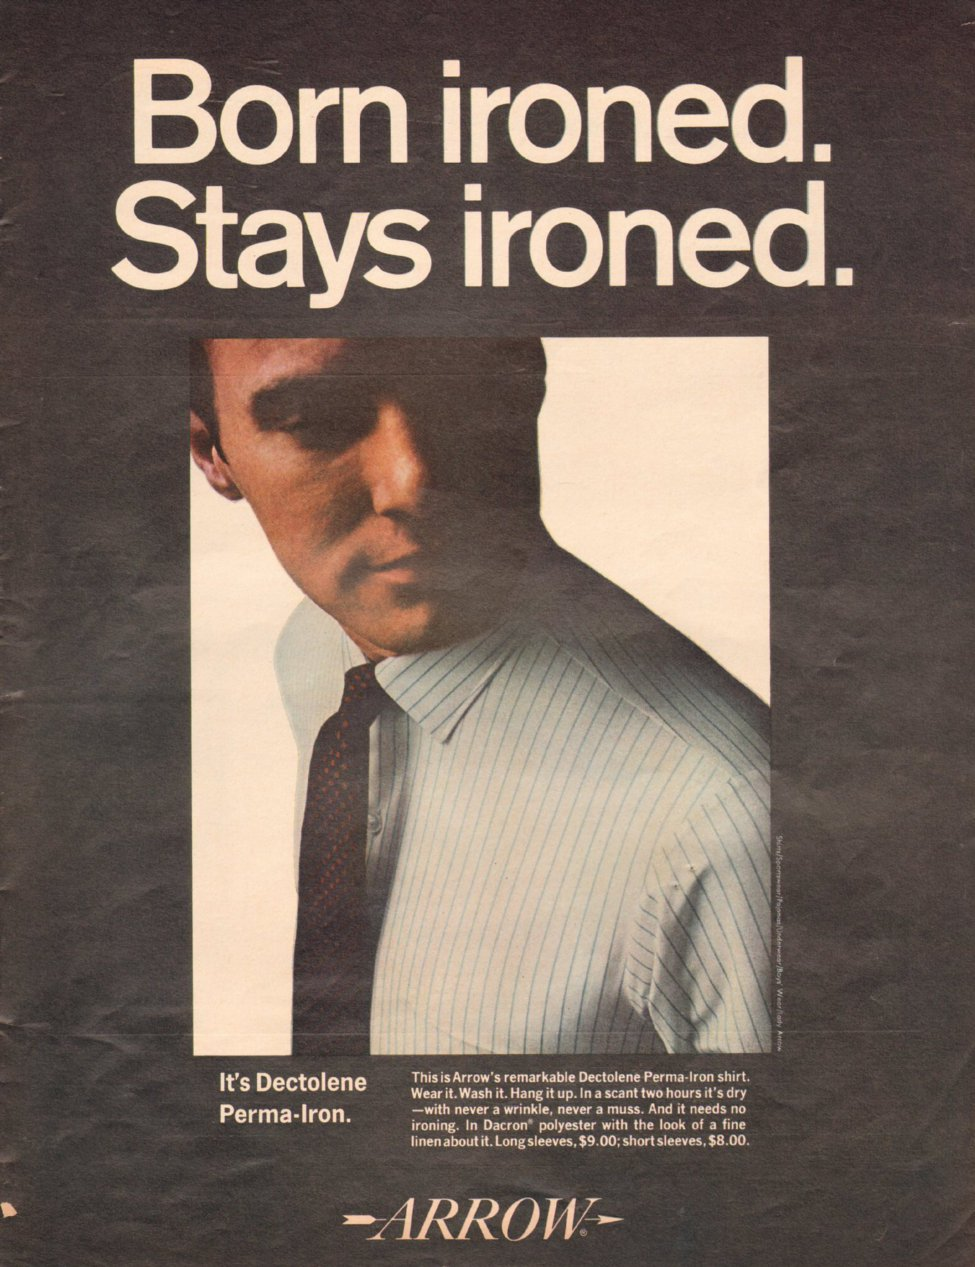 ARROW DECTOLENE PERMA-IRON SHIRT LIFE 11/04/1966